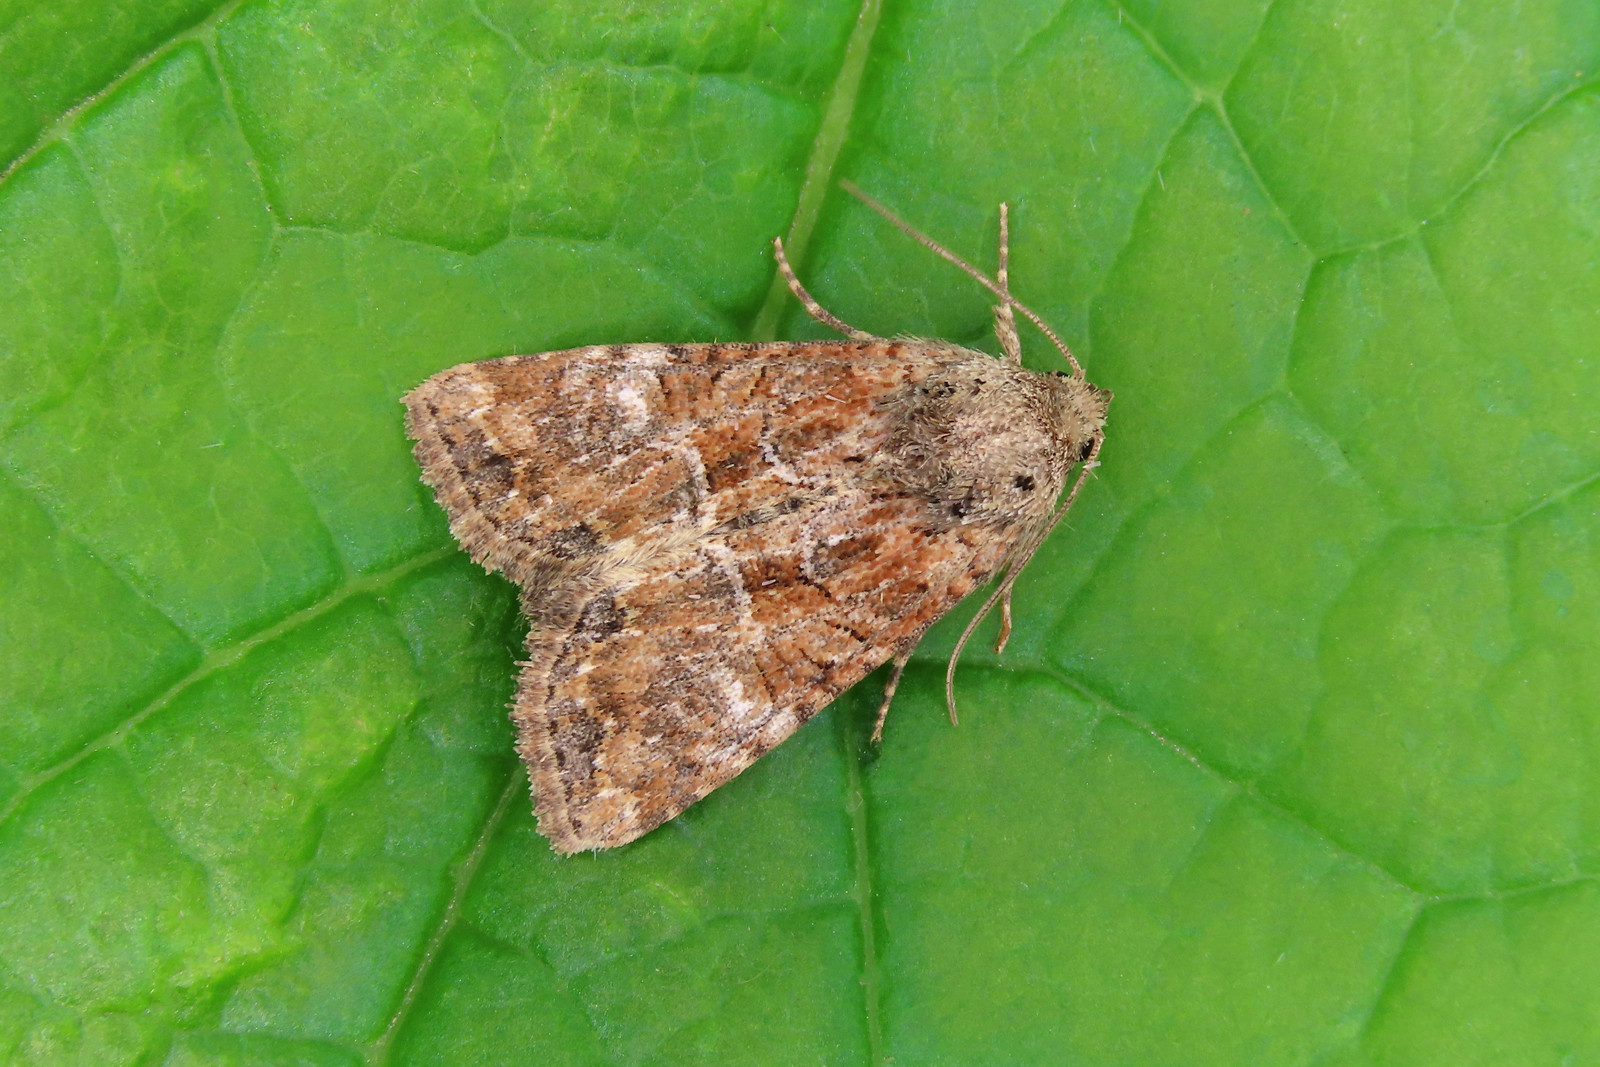 73.172 Cloaked Minor - Mesoligia furuncula